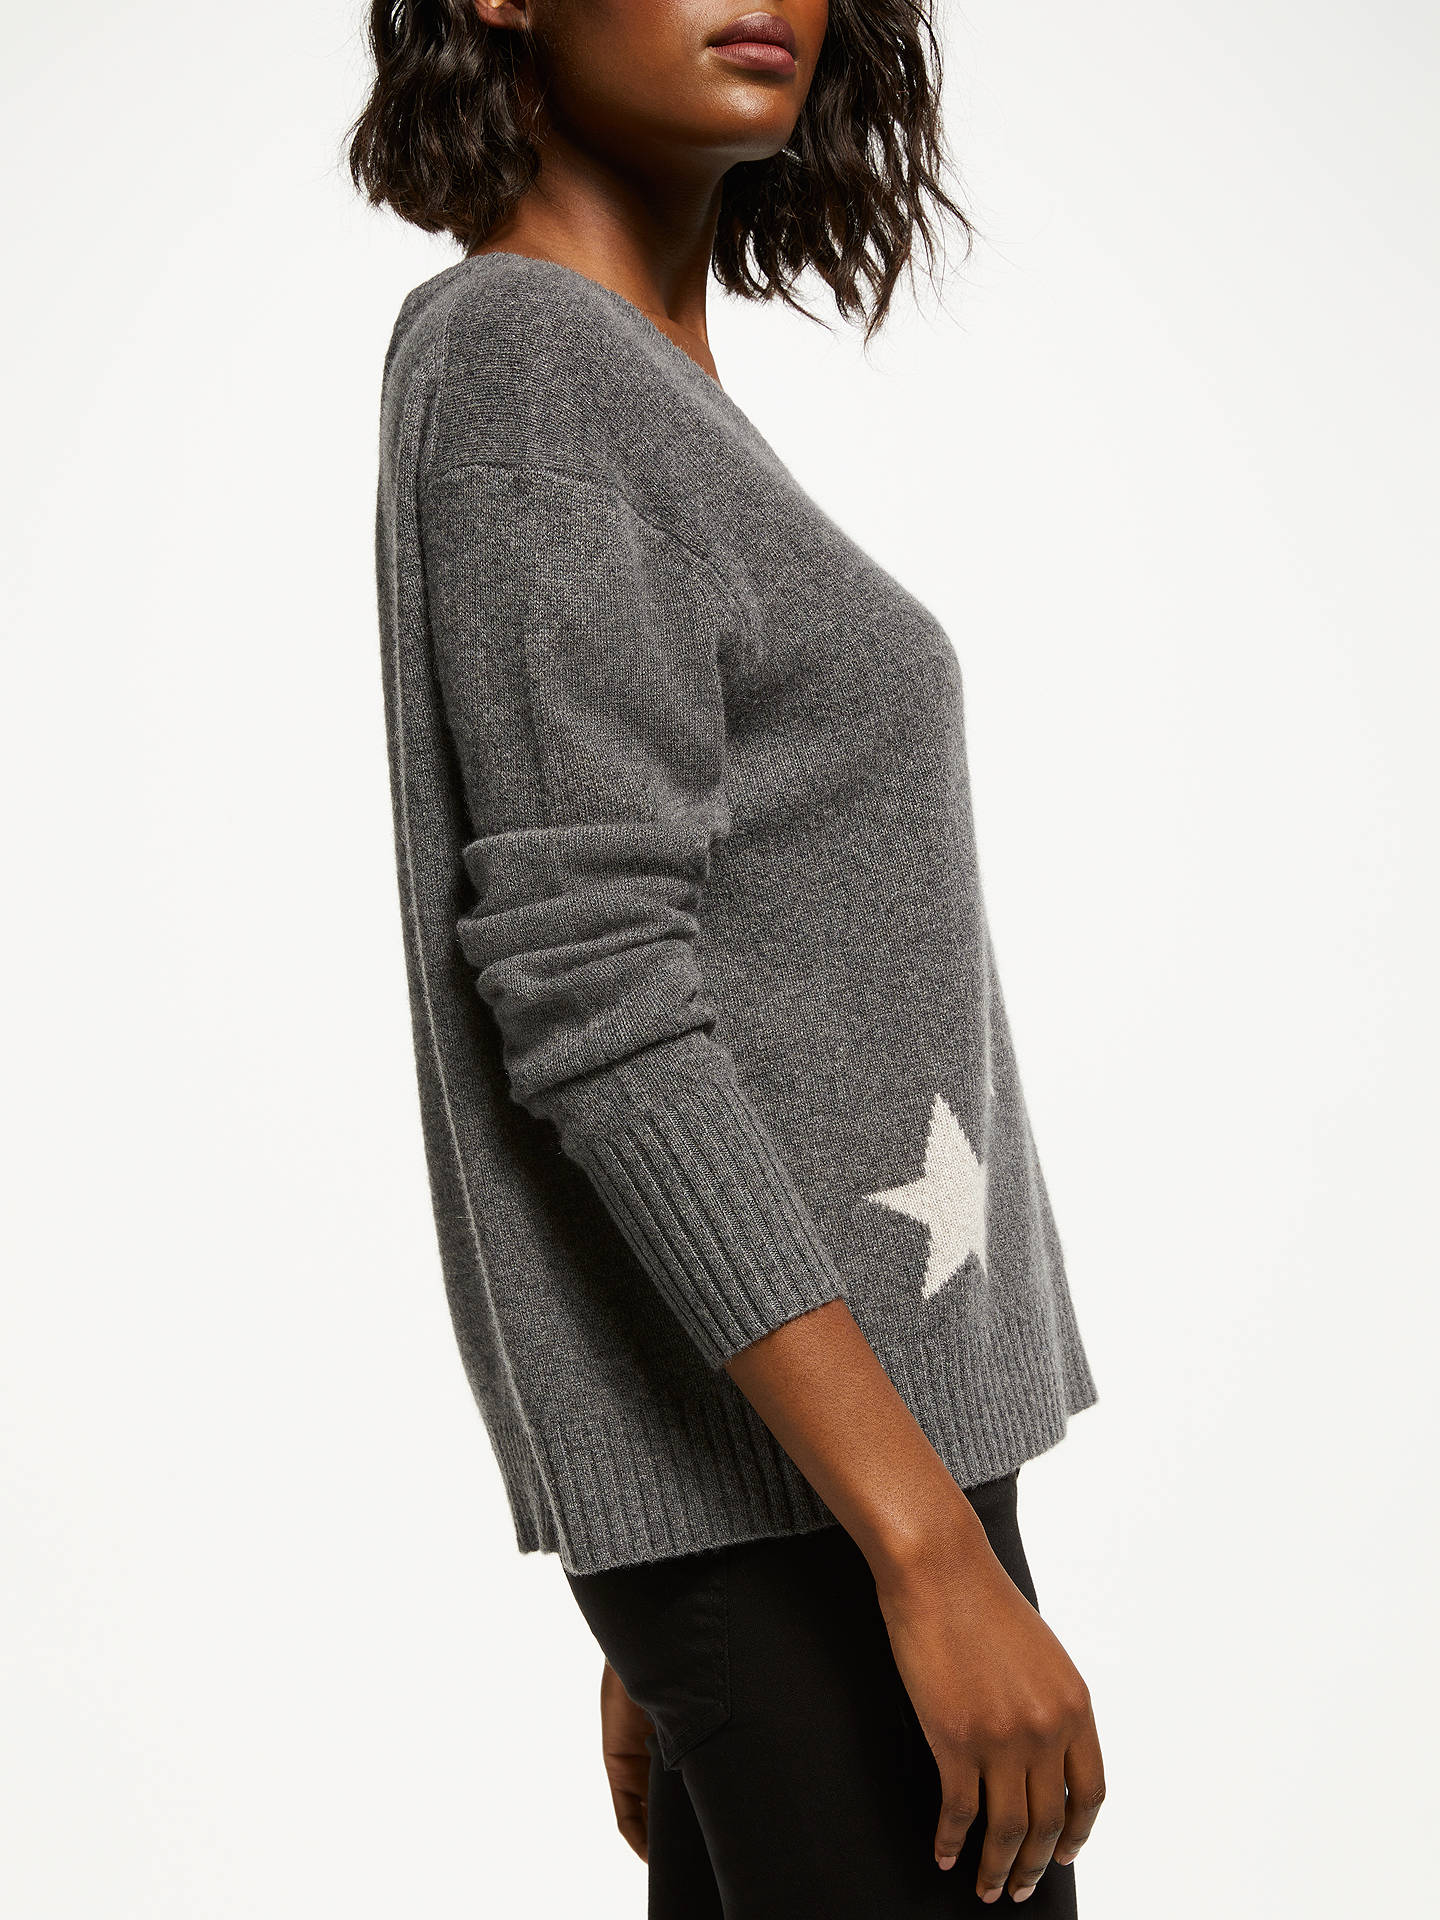 Buy360 Sweater Jayla Star Print V-Neck Sweater, Charcoal/Chalk, M Online at johnlewis.com